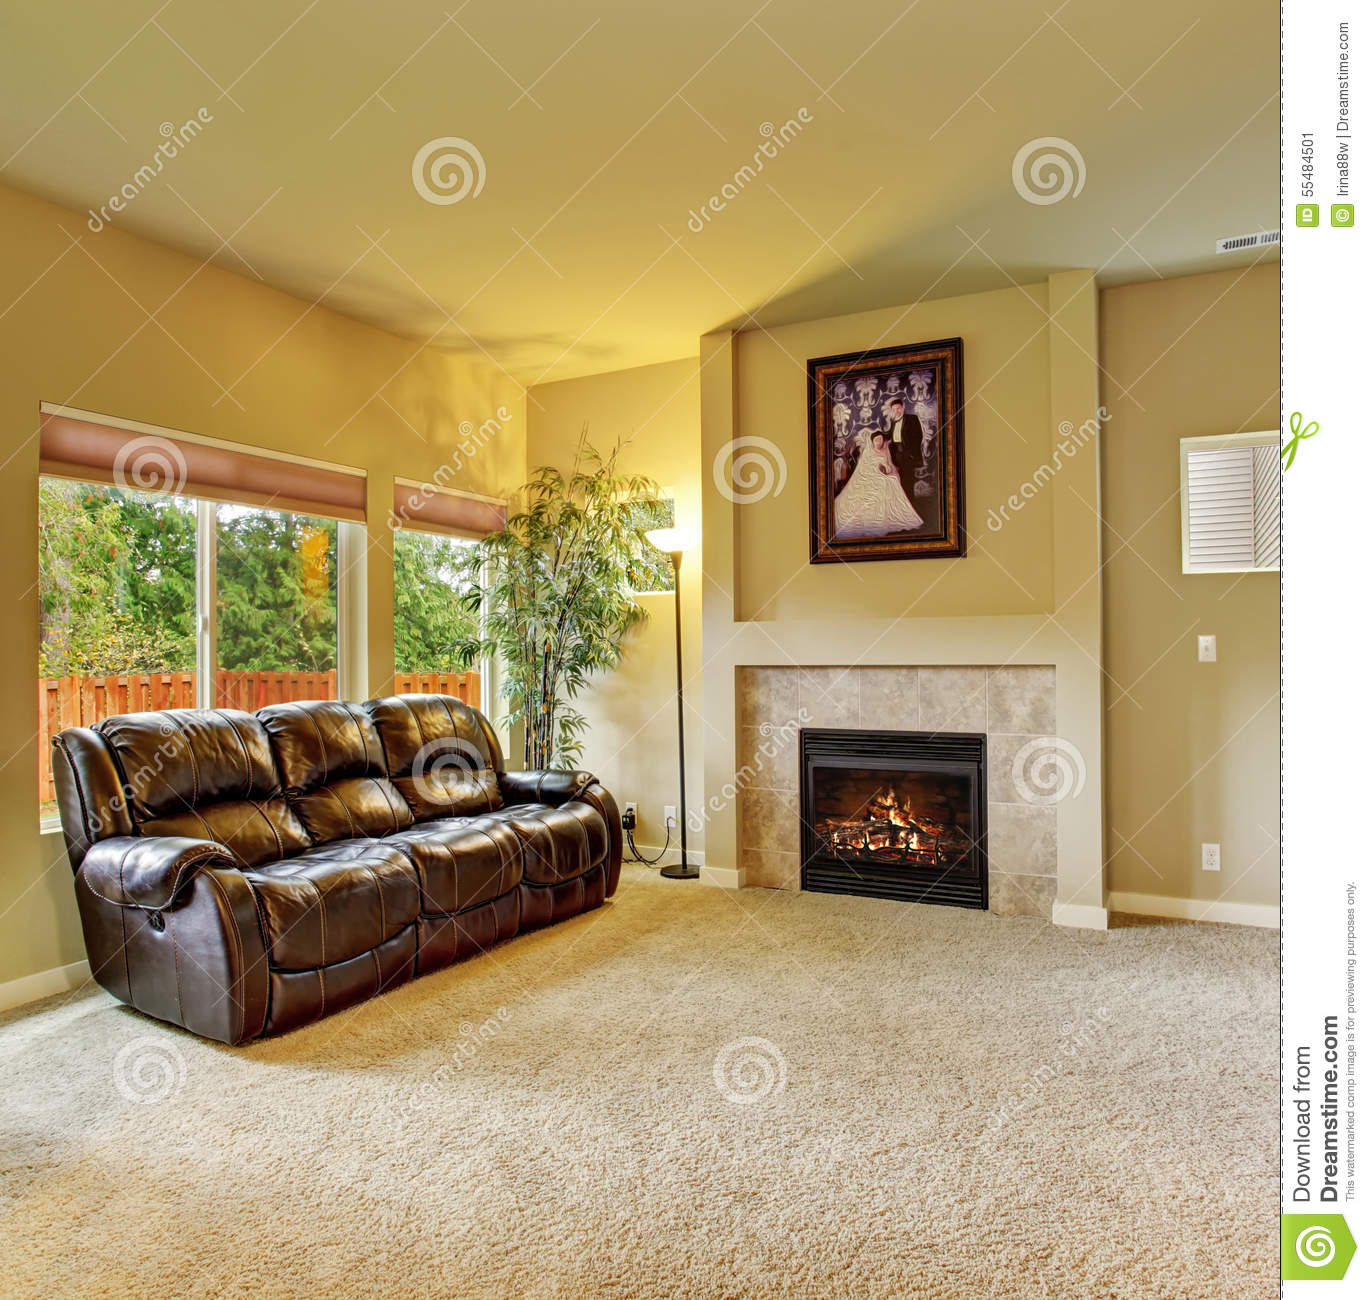 Cozy living room with carpet and fireplace stock photo - Does a living room need a fireplace ...